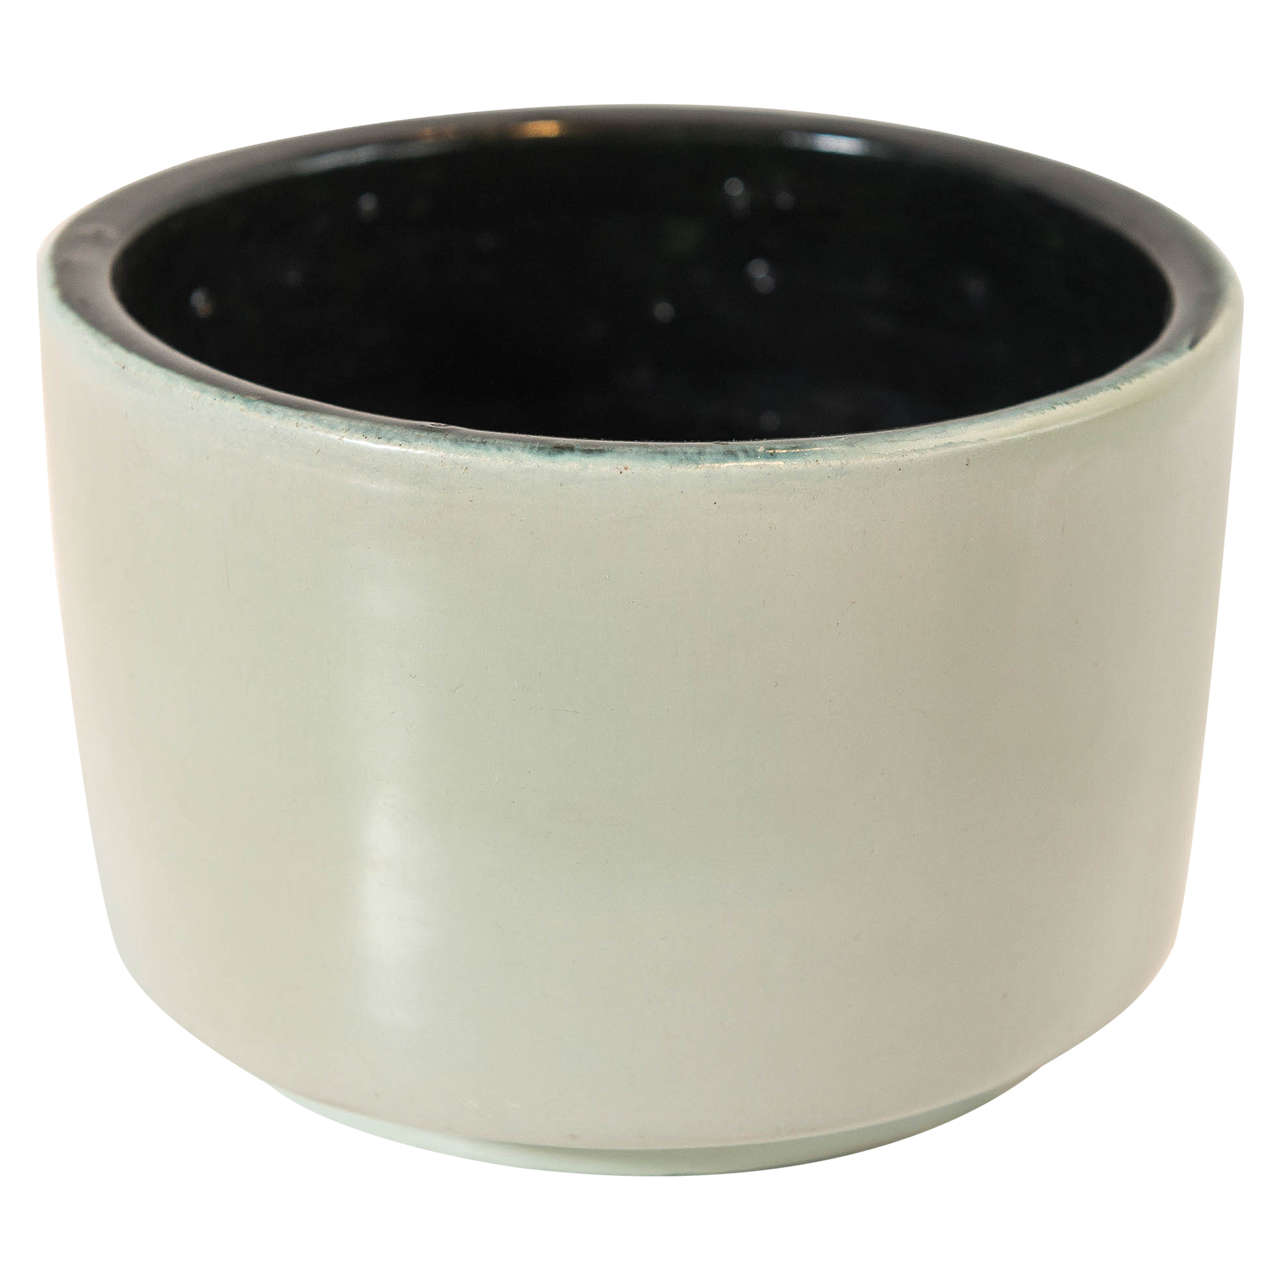 Georges JOUVE Glazed Ceramic Pot For Sale